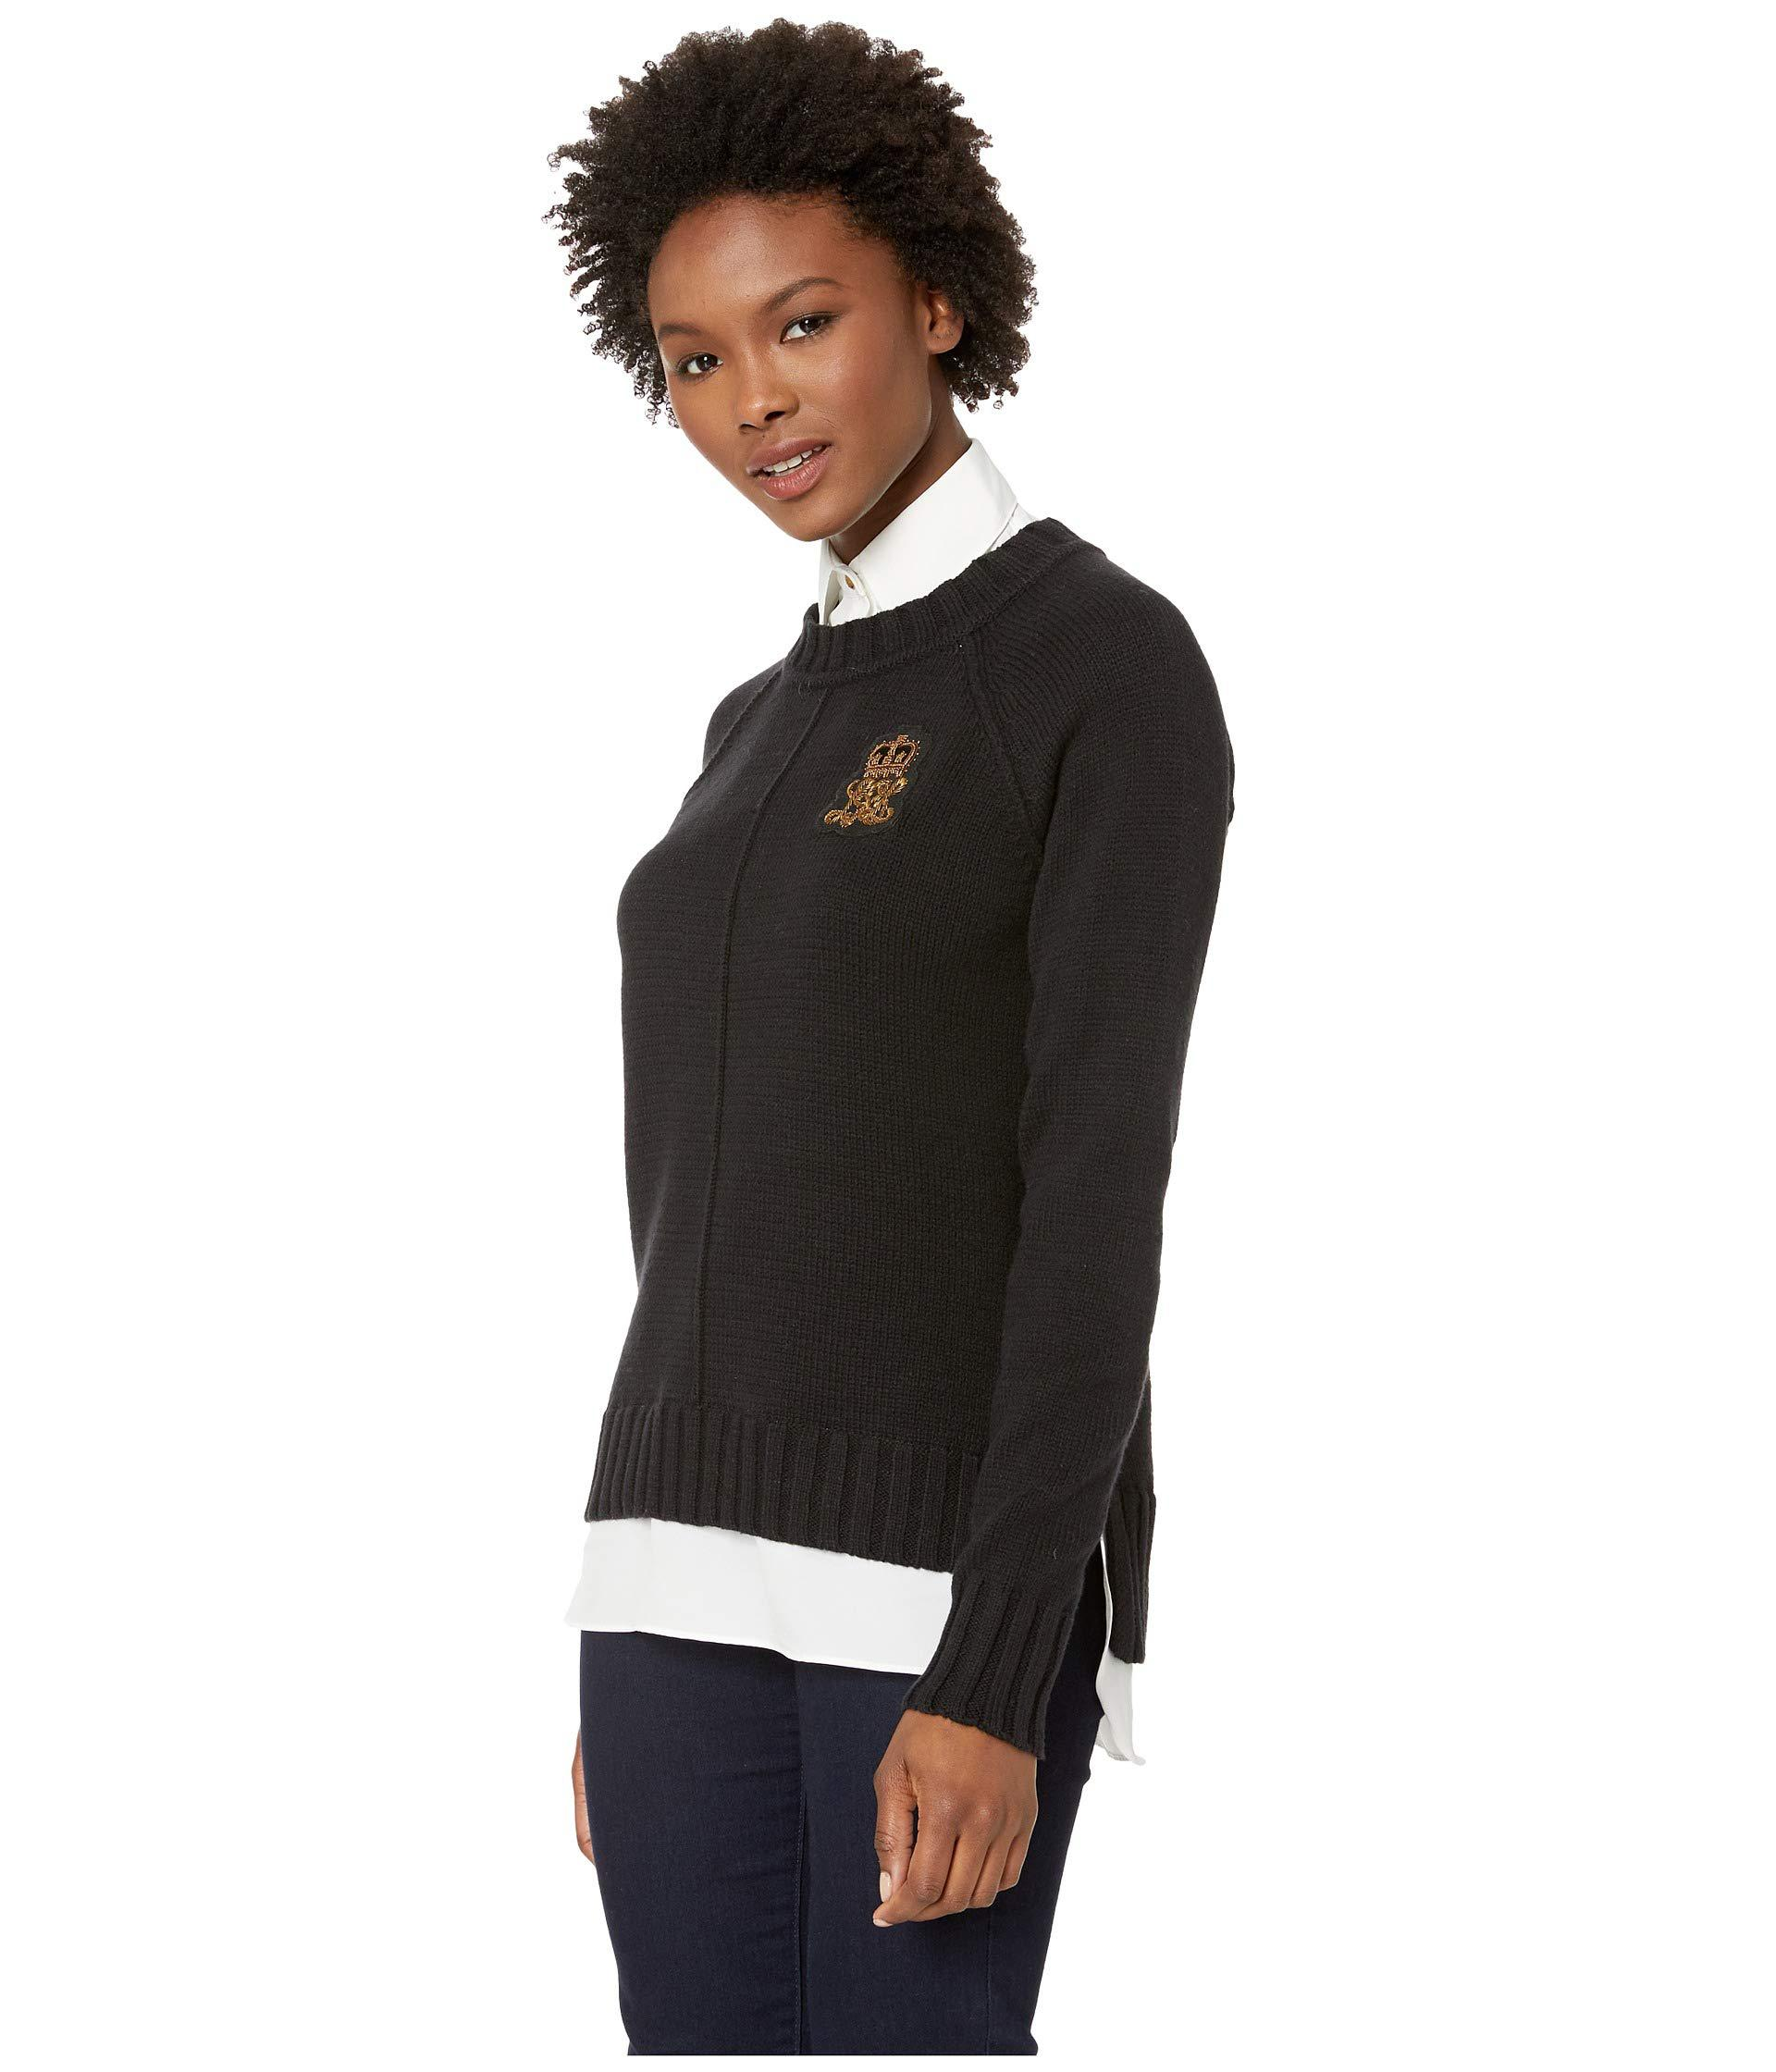 Lyst - Lauren by Ralph Lauren Bullion-patch Layered Shirt (polo Black)  Women s Clothing in Black - Save 67% e4917e917